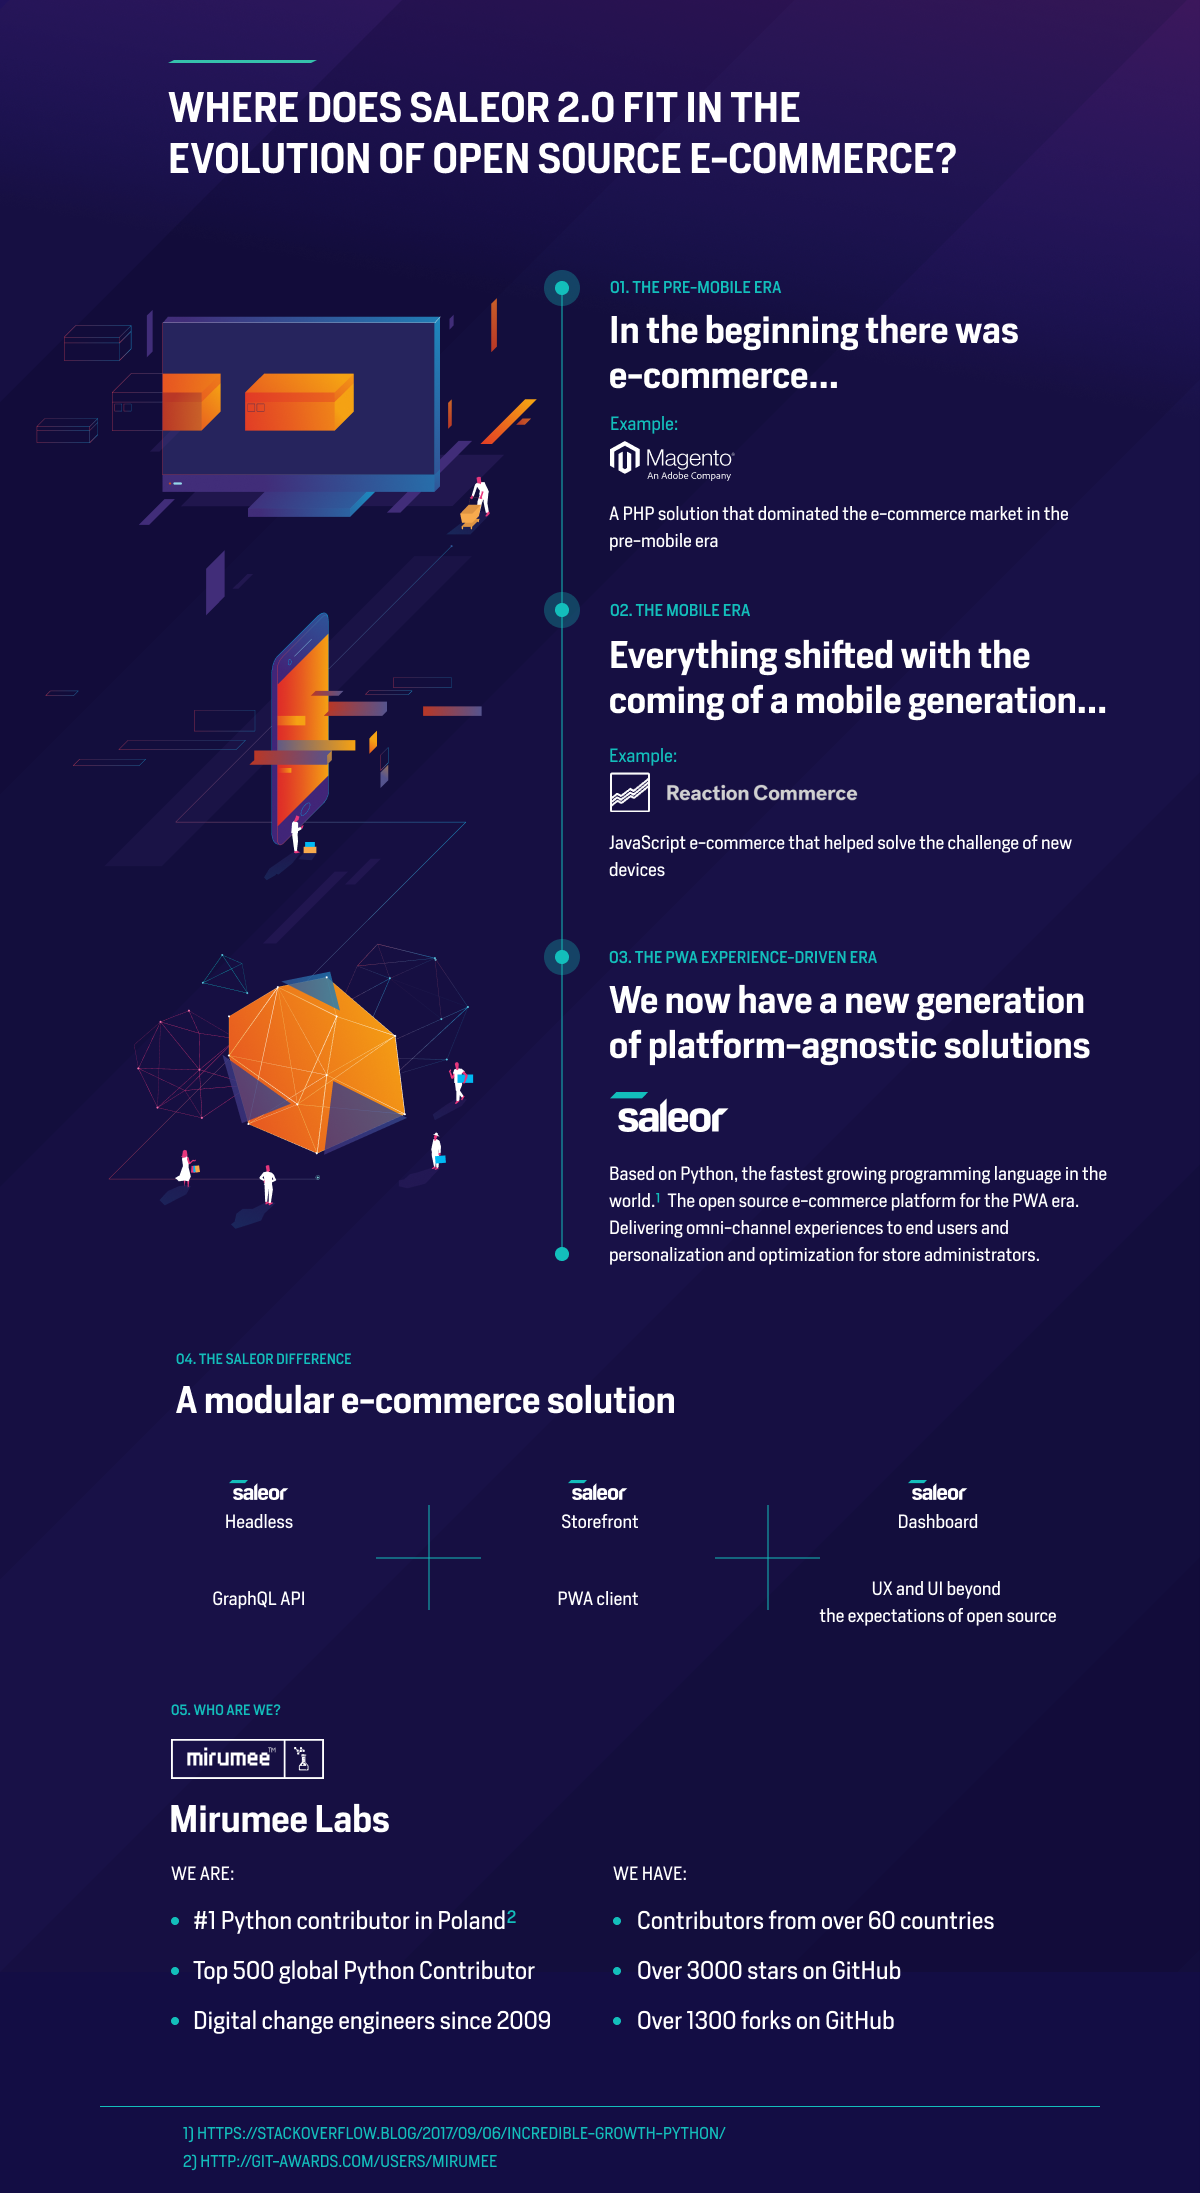 Where Does Saleor Fit in the Evolution of E-commerce?